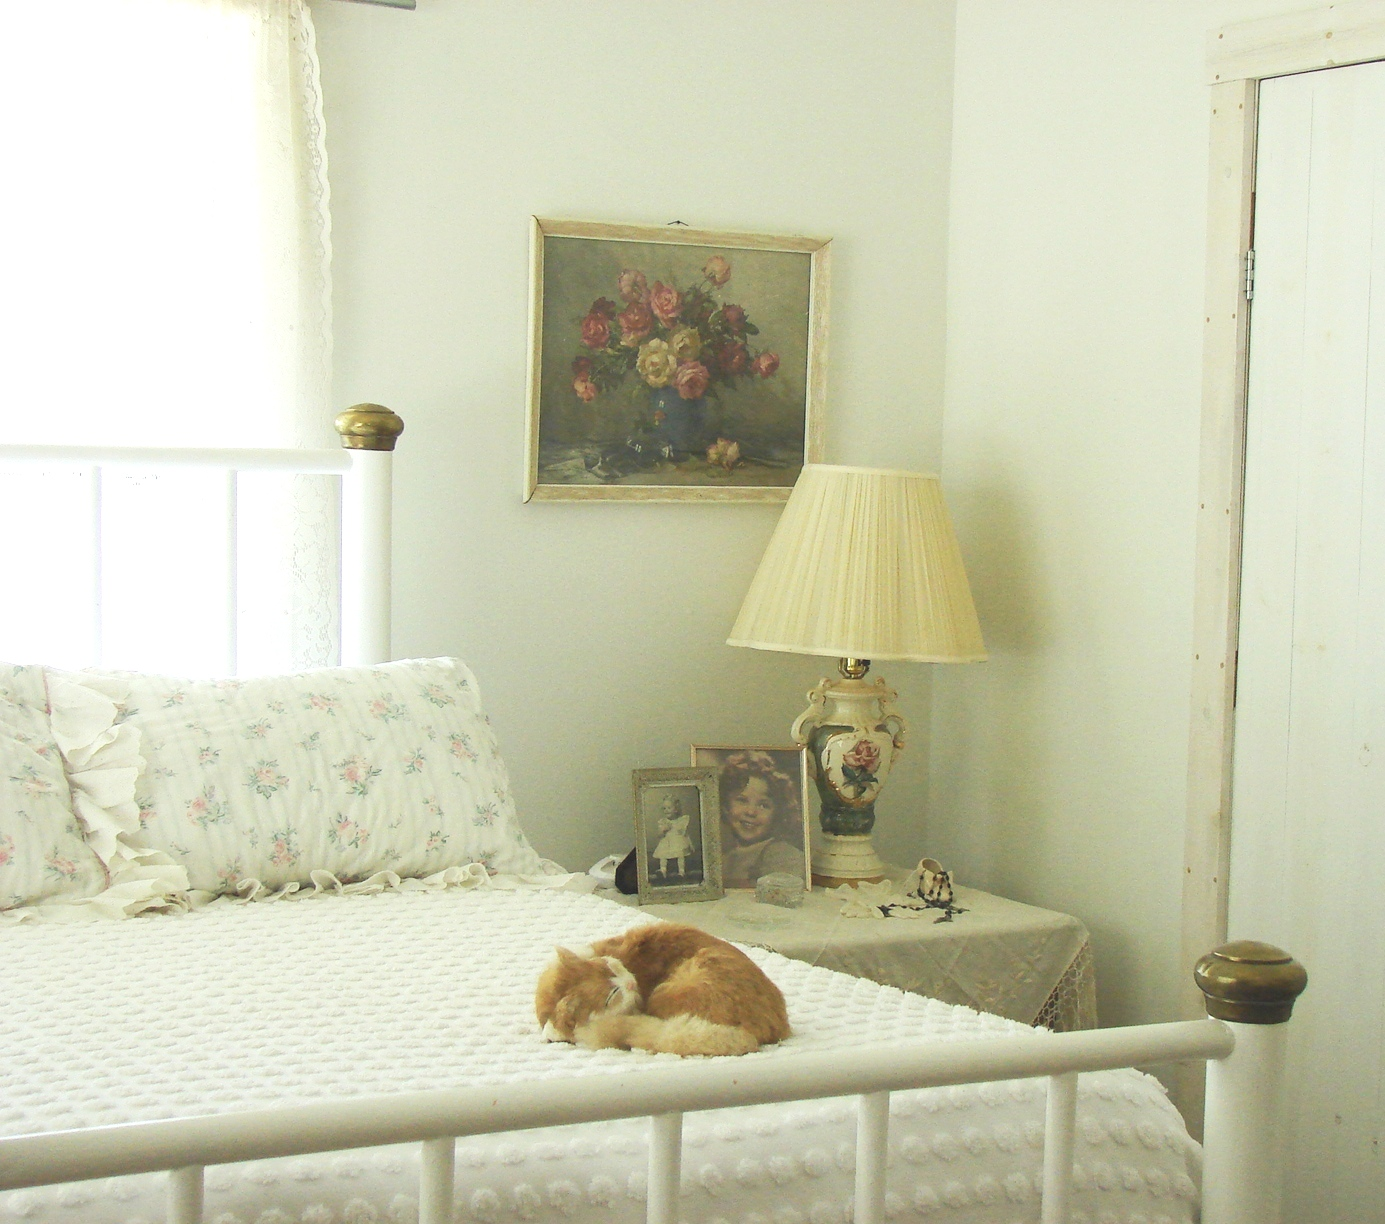 1930s Home Decor: The Country Farm Home: The Country Bedroom 1930s Style